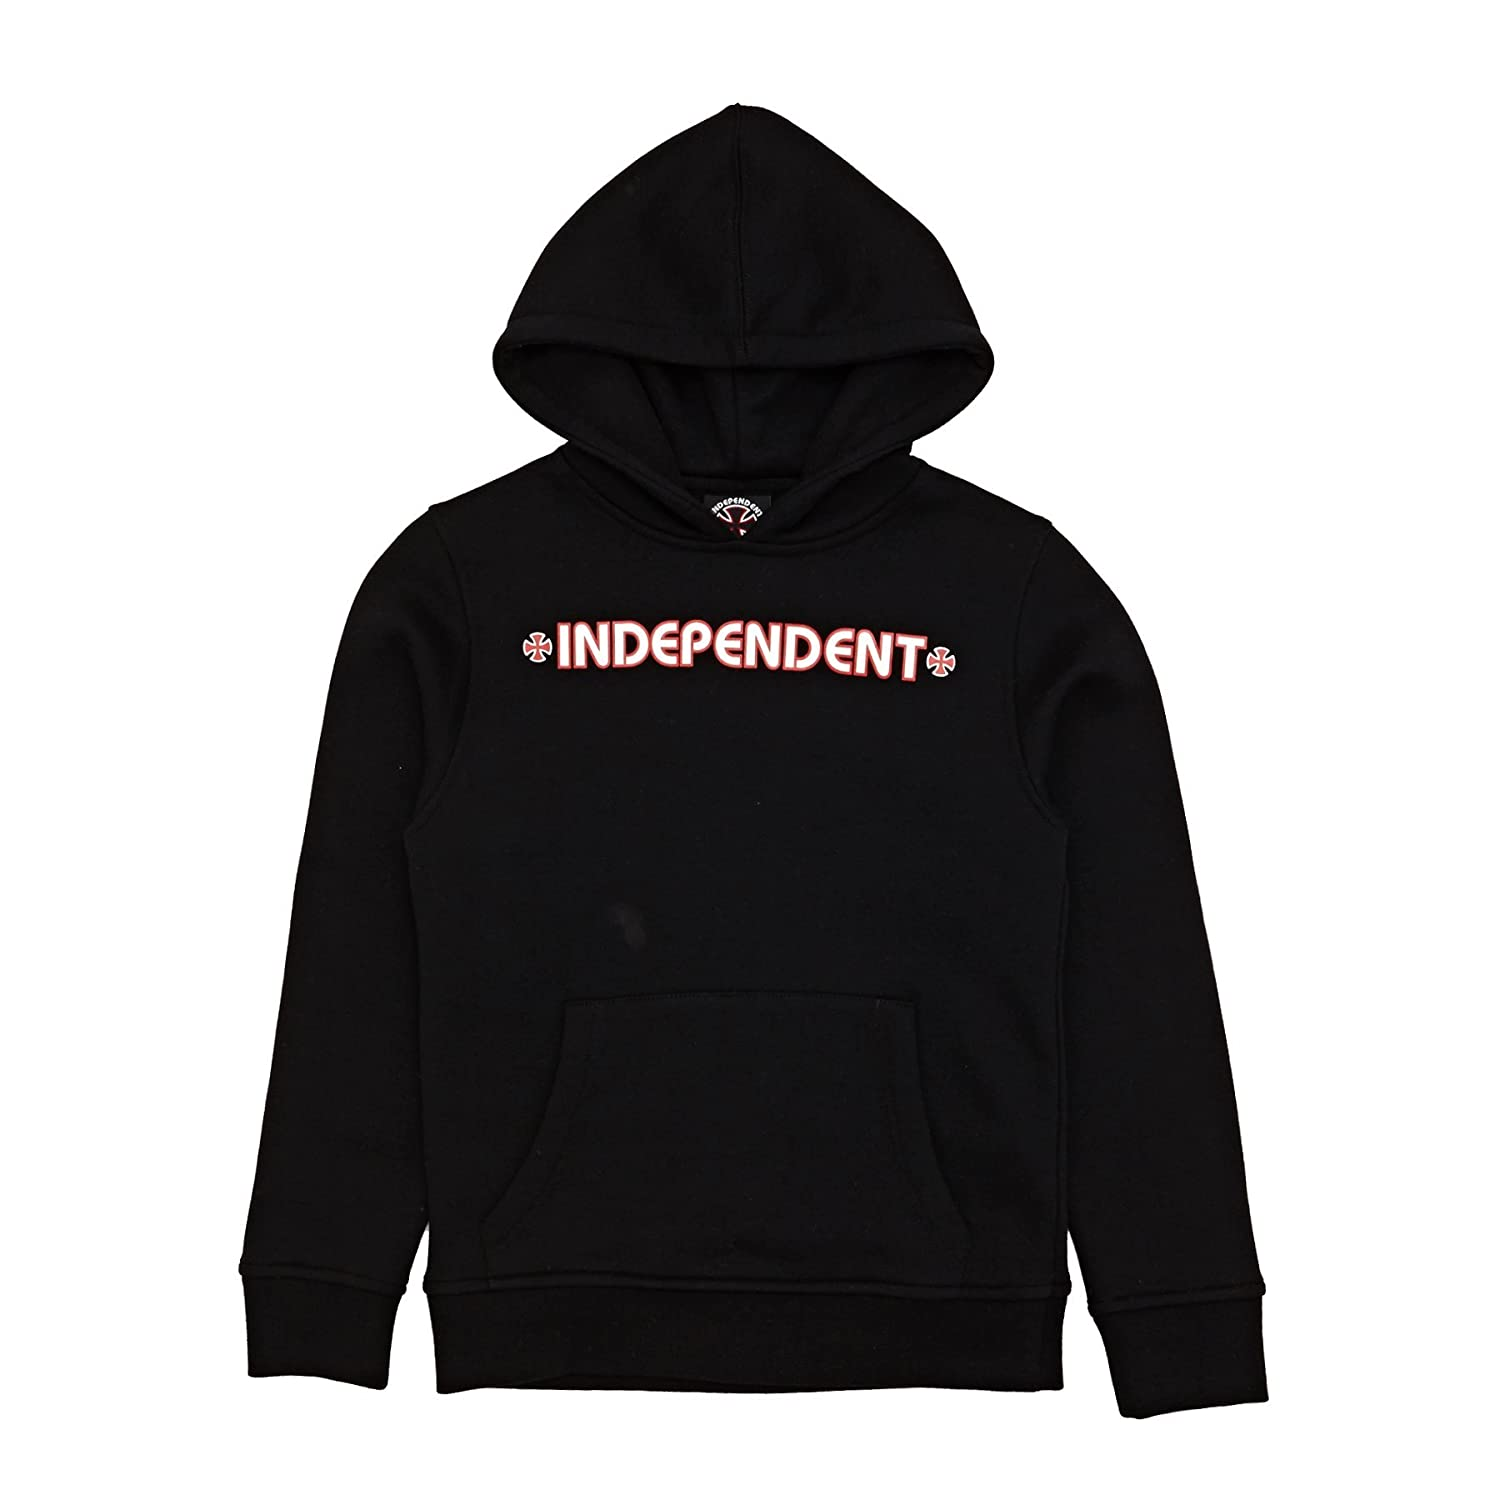 Independent Sudadera con Capucha Infantil Bar Cross Negro: Amazon.es: Ropa y accesorios